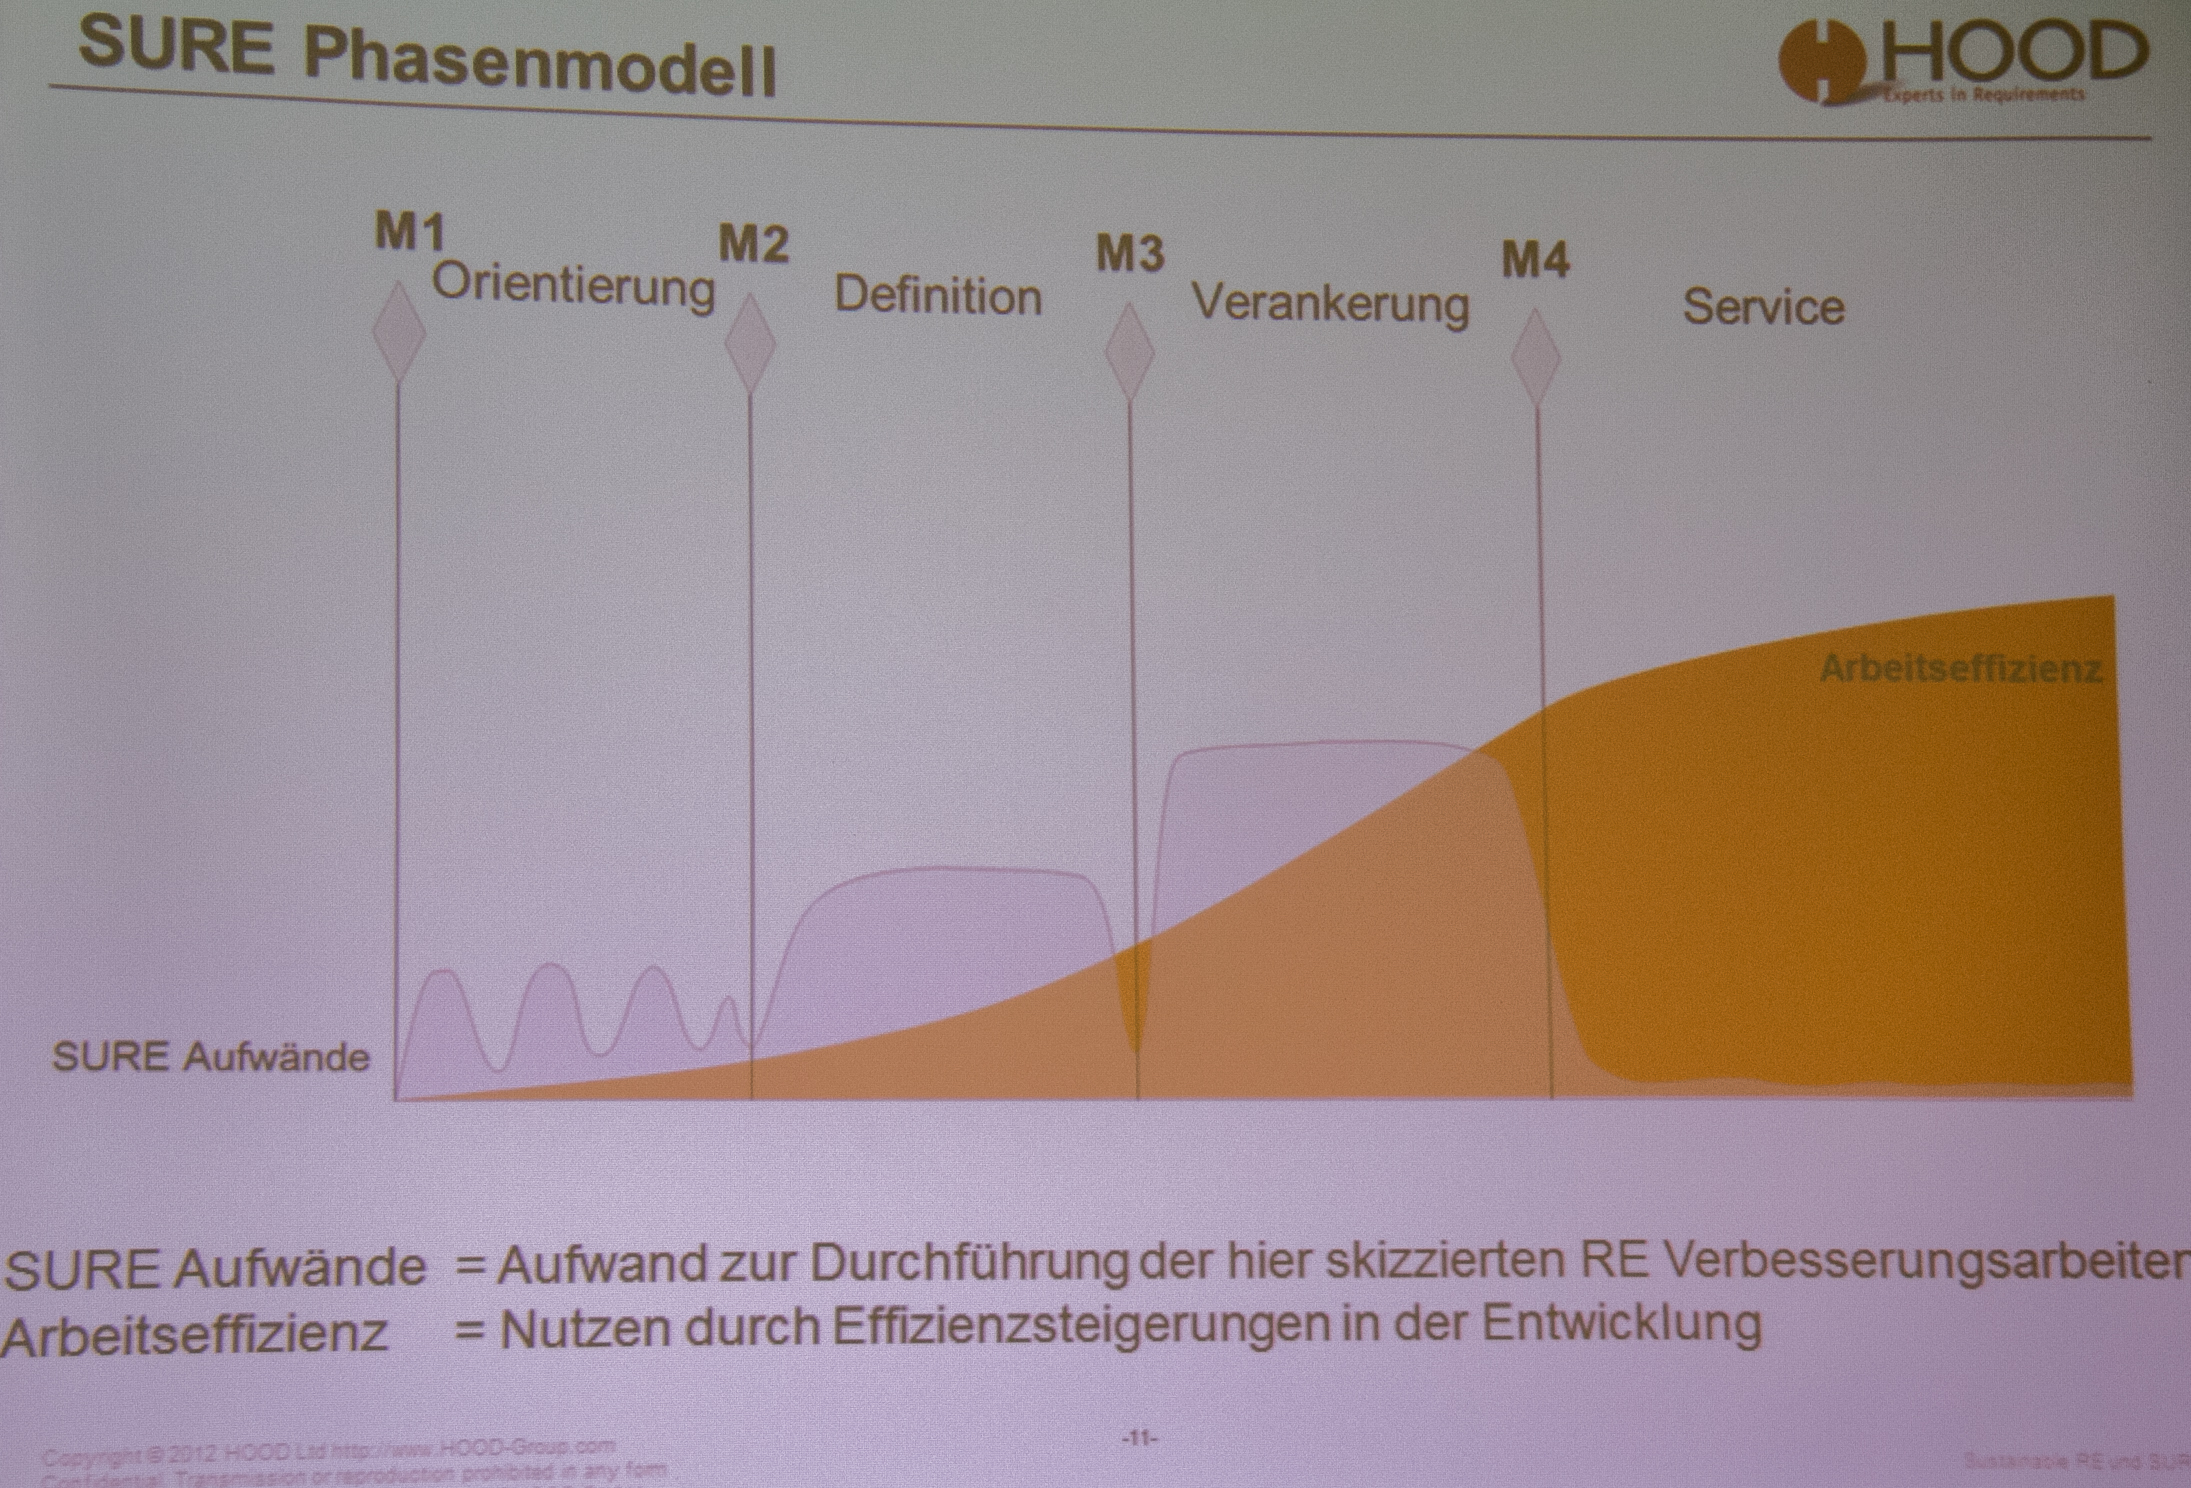 SURE Phasenmodell gemäss Hood Group am Swiss Requirements Day 2012